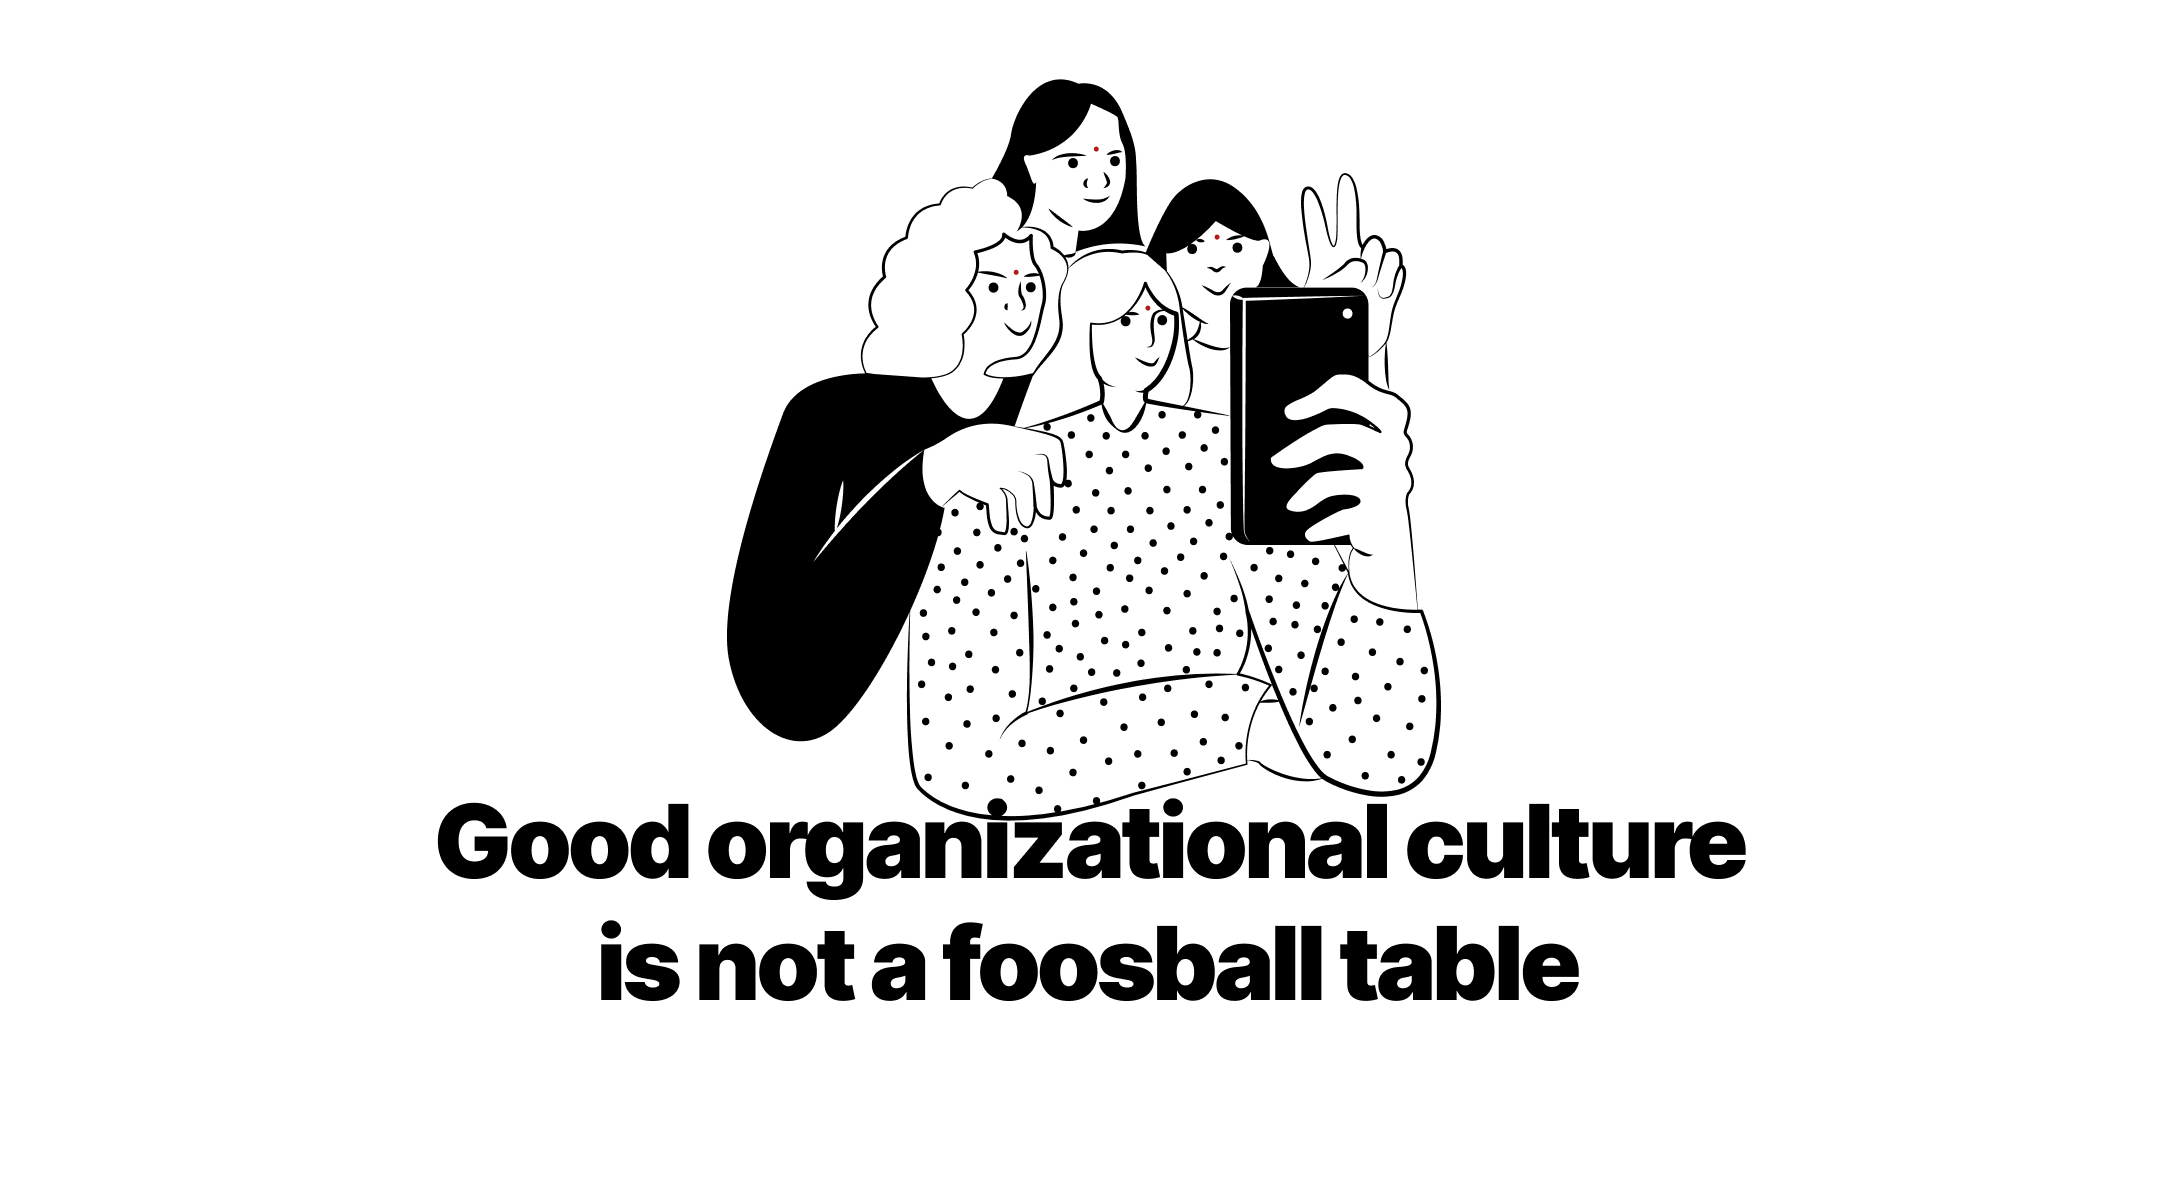 Good organizational culture is not a foosball table